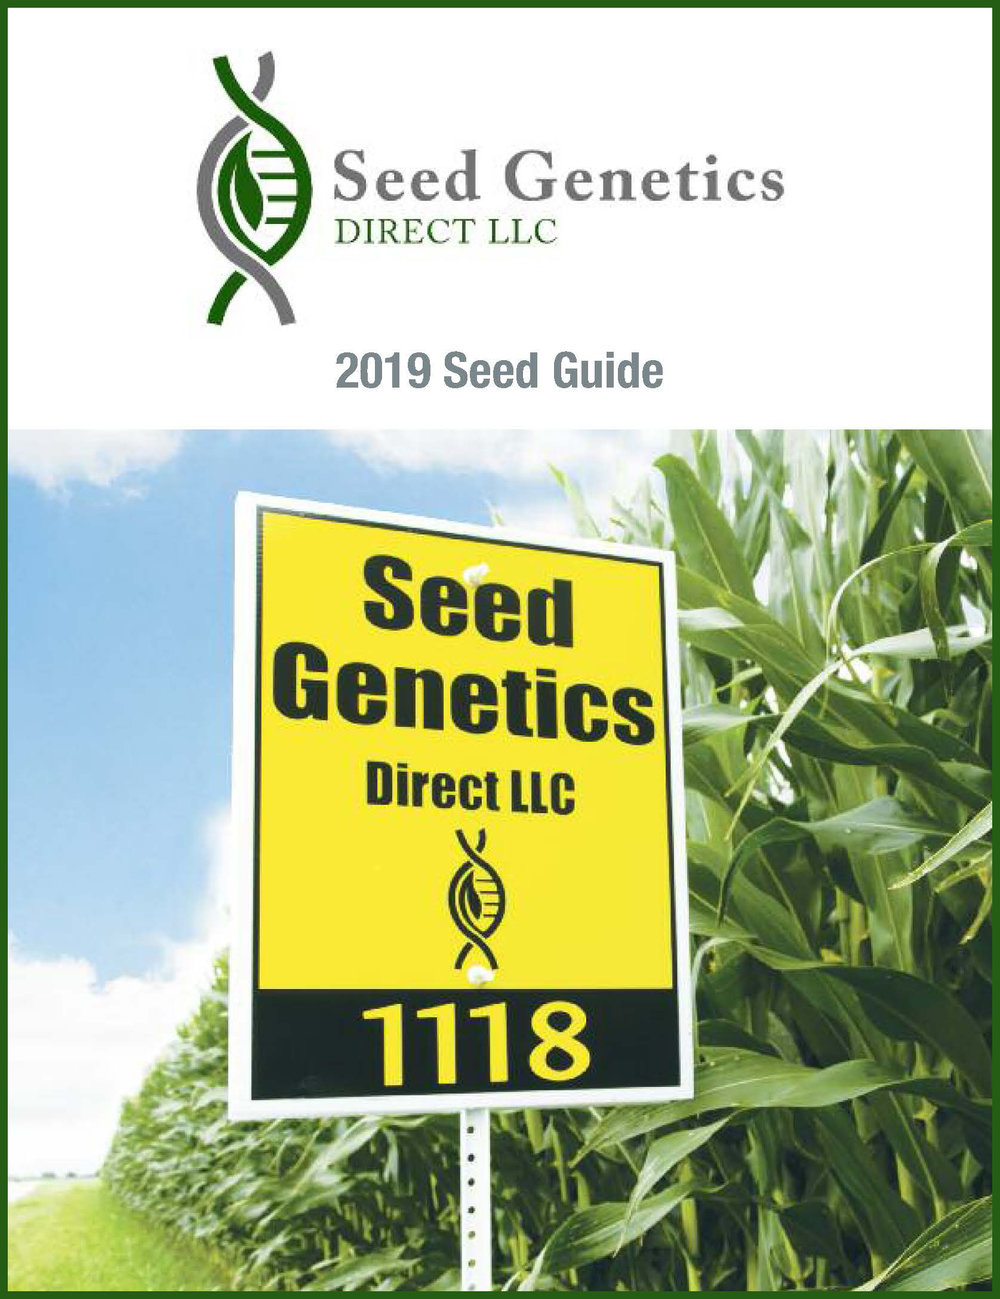 2019 Seed Guide Back Gt Images For Bean Germination Diagram Cover 19 Seedgeneticsformat1000w